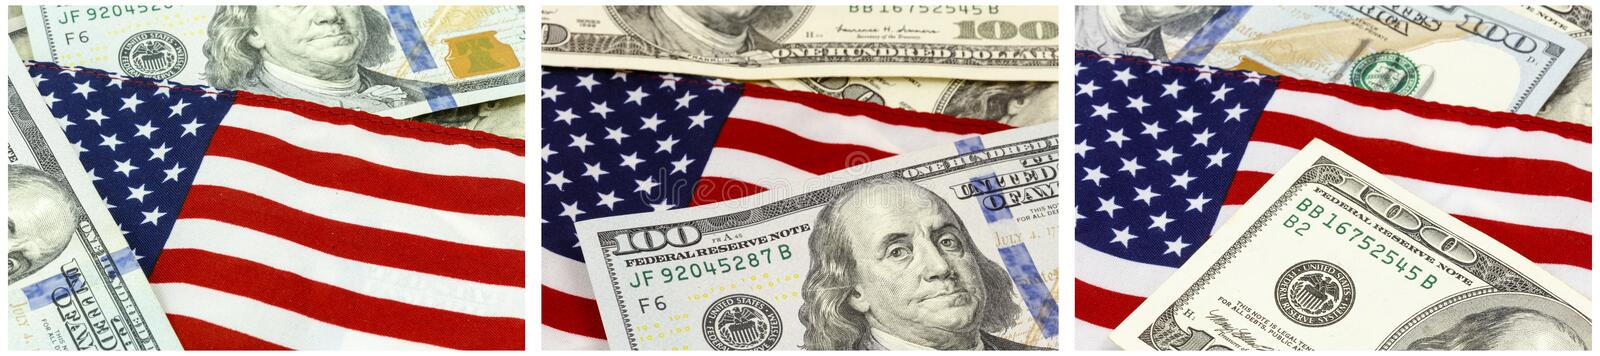 American flag USA currency collage stock illustration